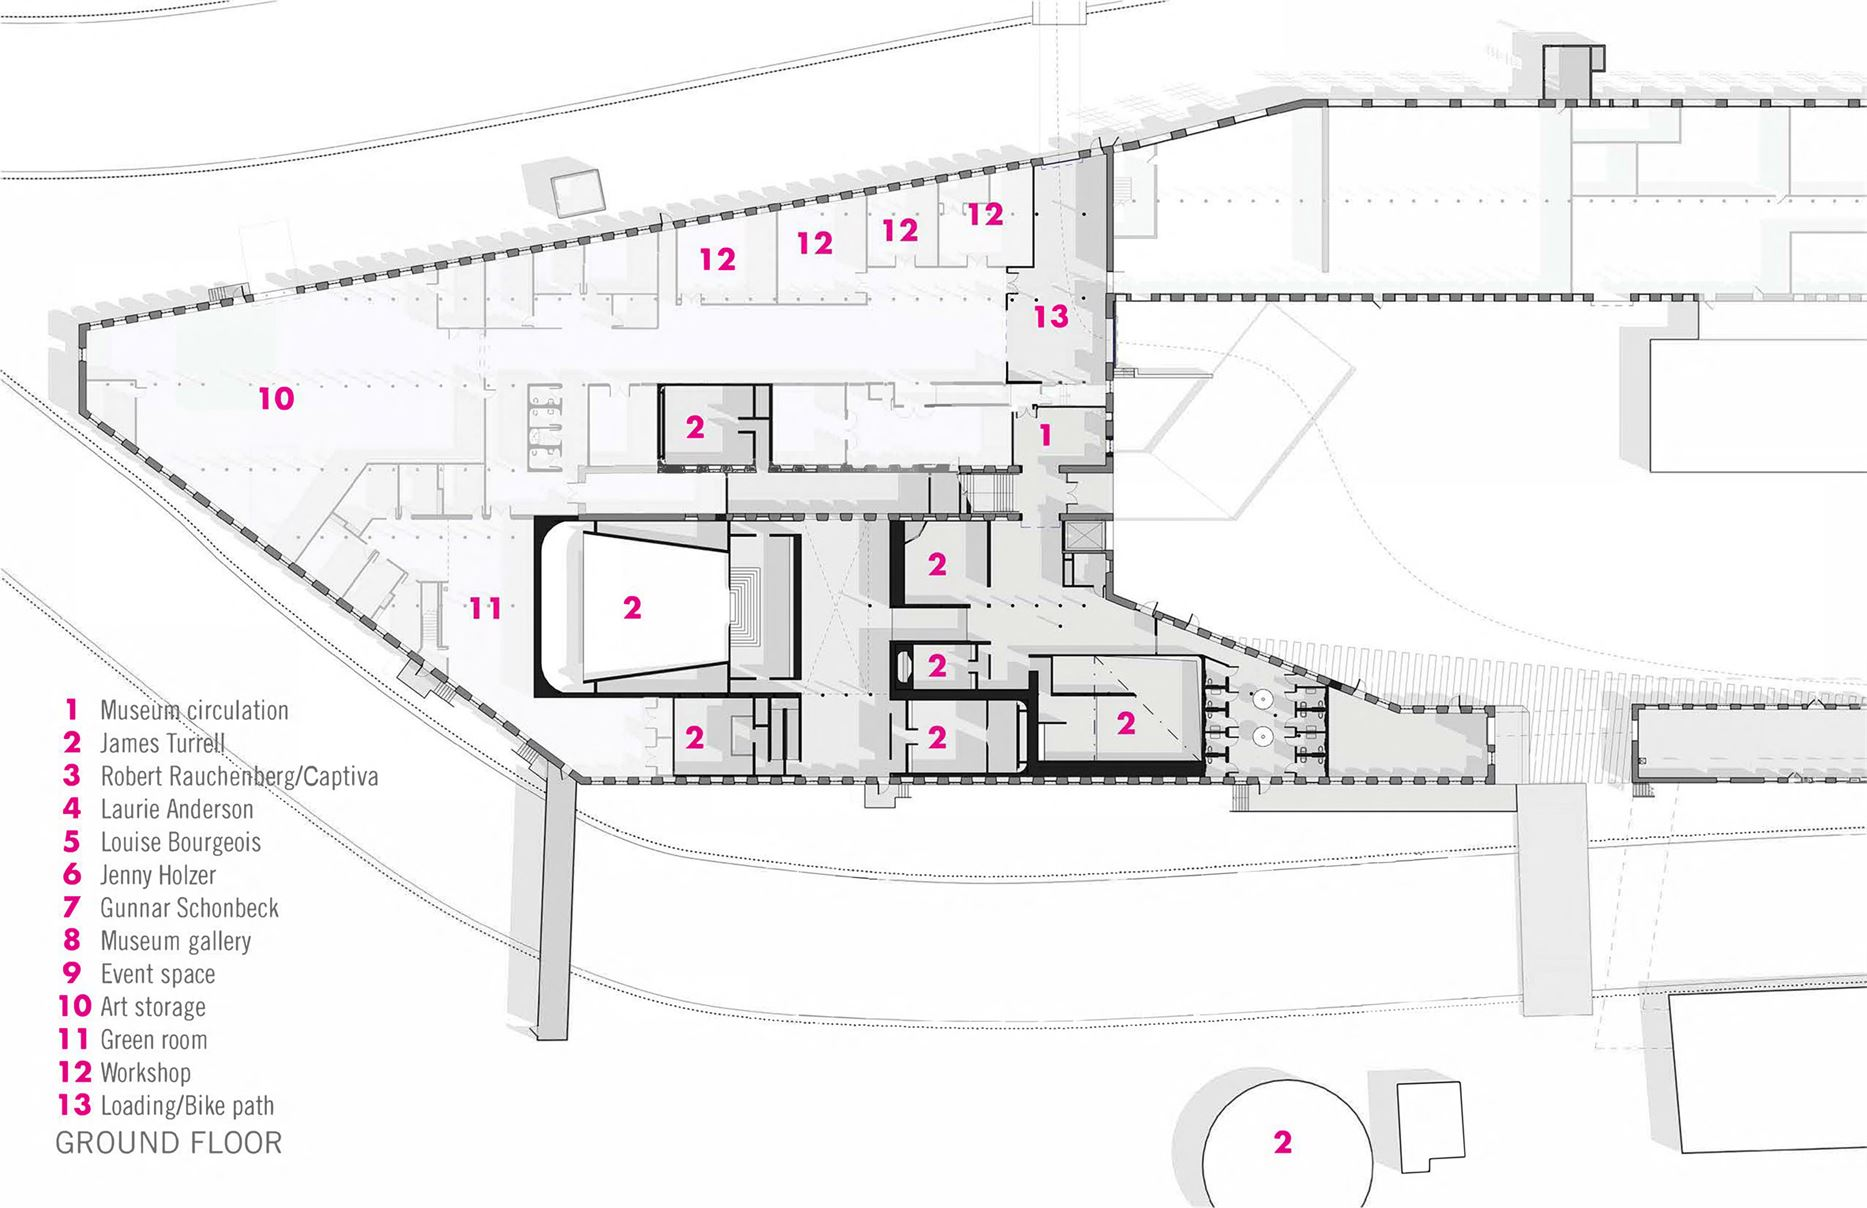 floor-plan-bruner-cott-mass-moca-massachusetts-museum-of-contemporary-art-museum-textile-factory-berkshires-expansion-renovation_de